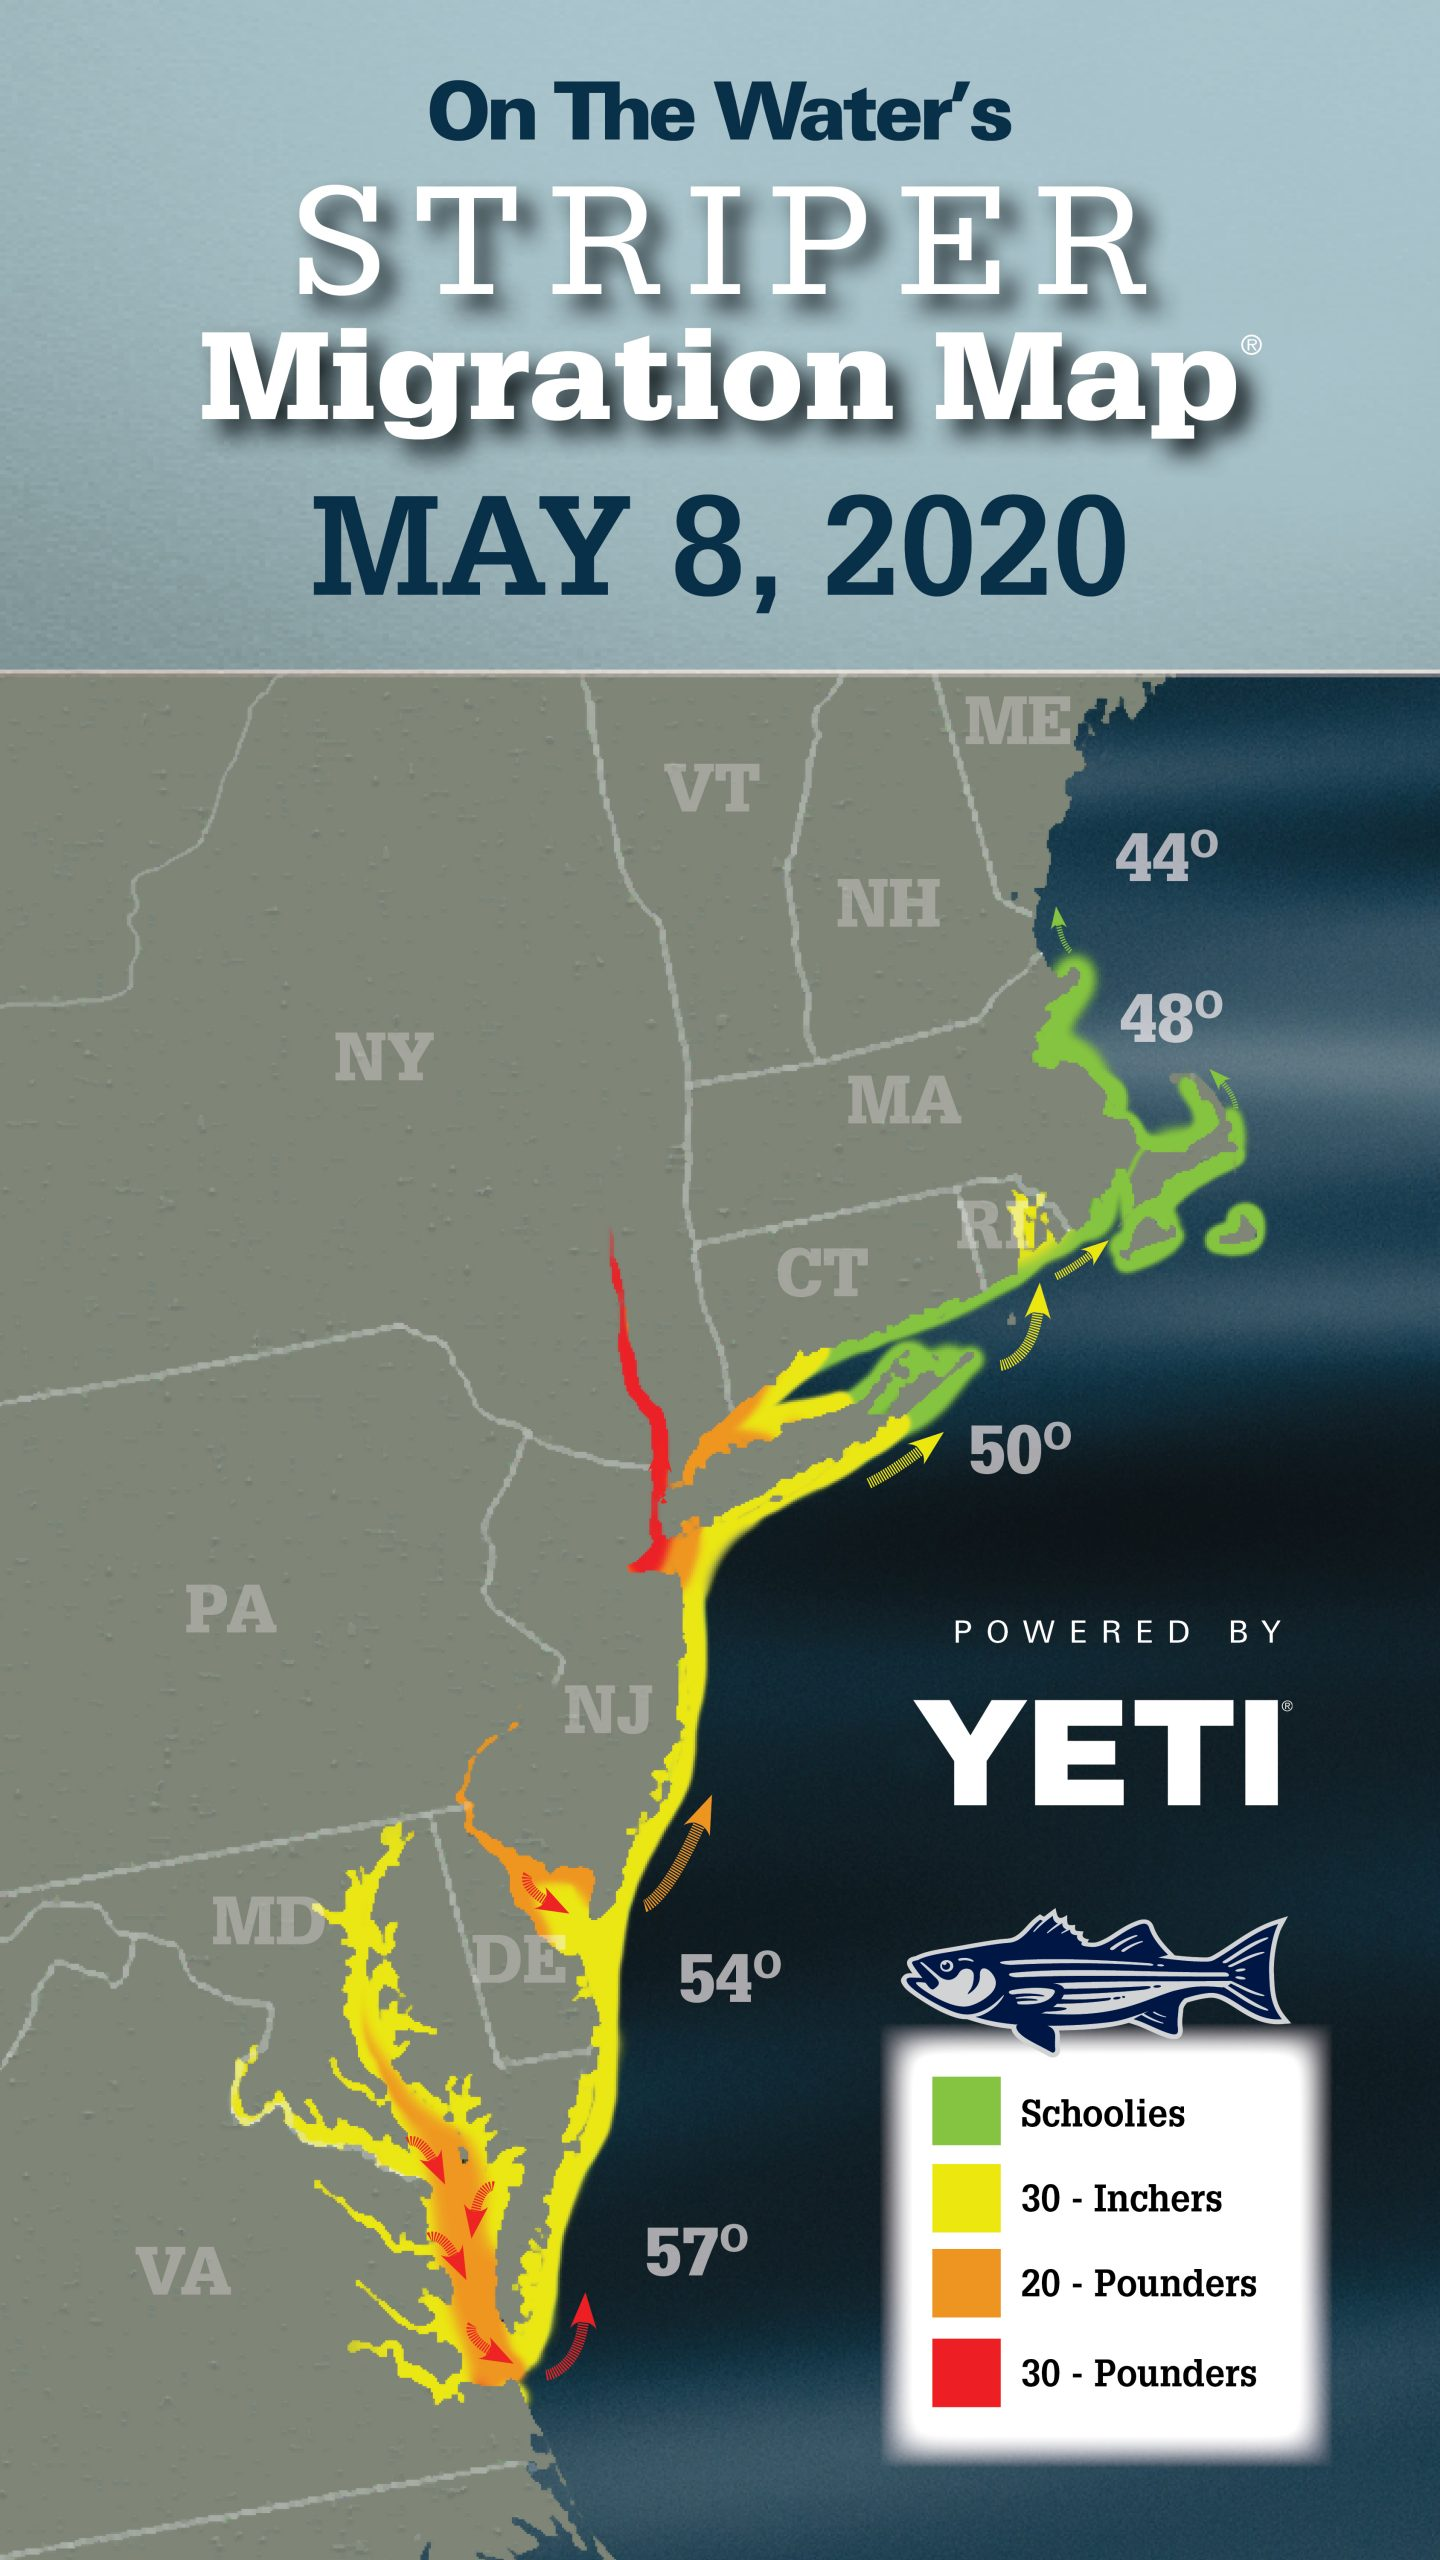 Striper Migration Map May 8, 2020